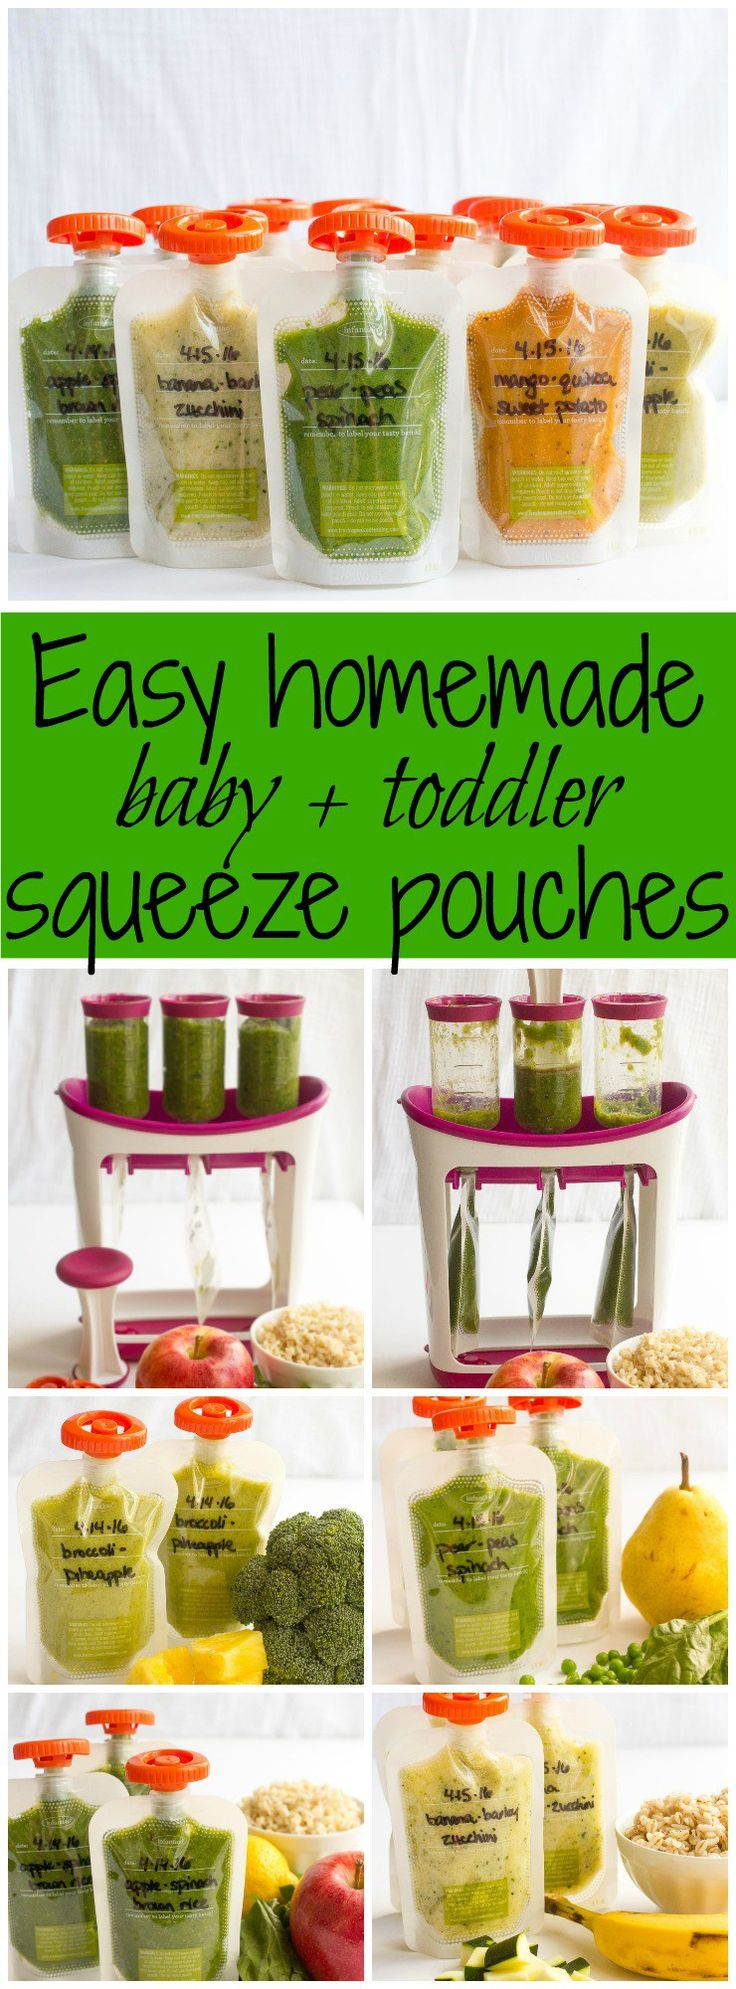 How to make homemade squeeze pouches and 5 easy recipes - great for babies, toddlers and preschool kids! | FamilyFoodontheTable.com